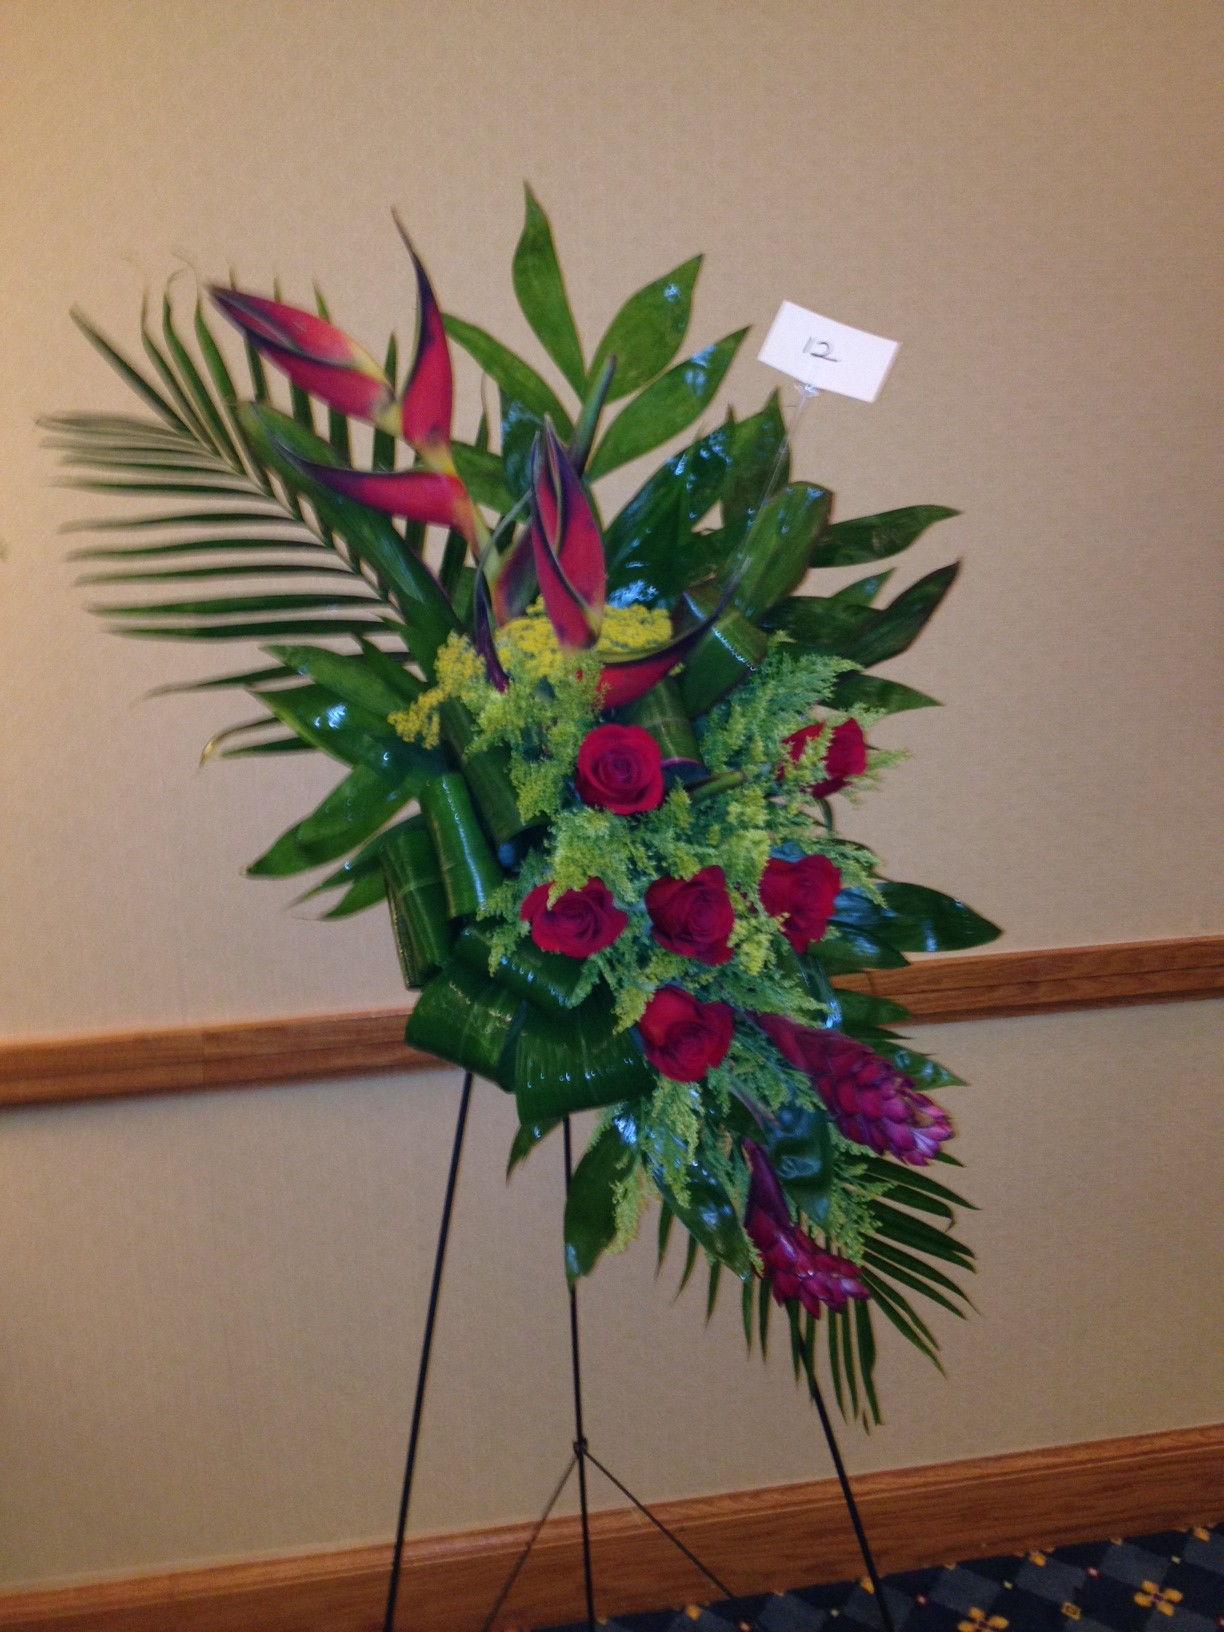 South carolina florist association convention 2012 tropical funeral flower arrangement izmirmasajfo